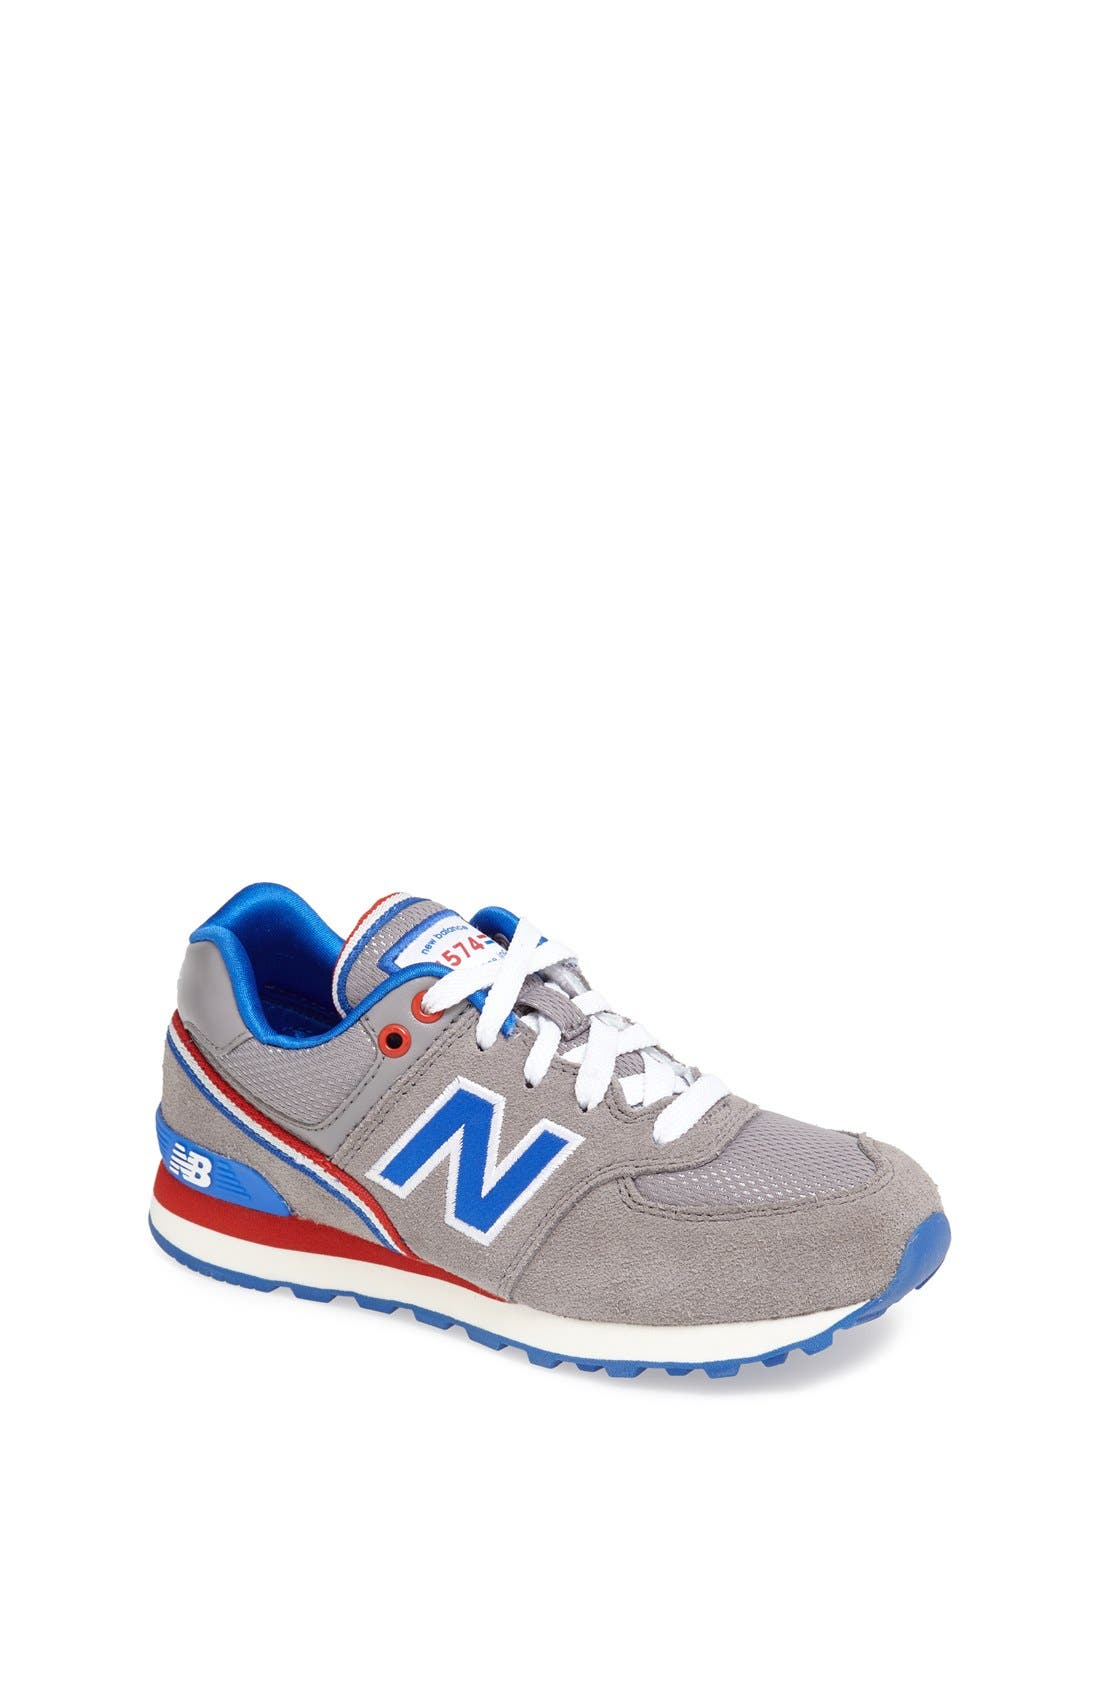 Alternate Image 1 Selected - New Balance '574 Jacket' Sneaker (Baby, Walker, Toddler, Little Kid & Big Kid)